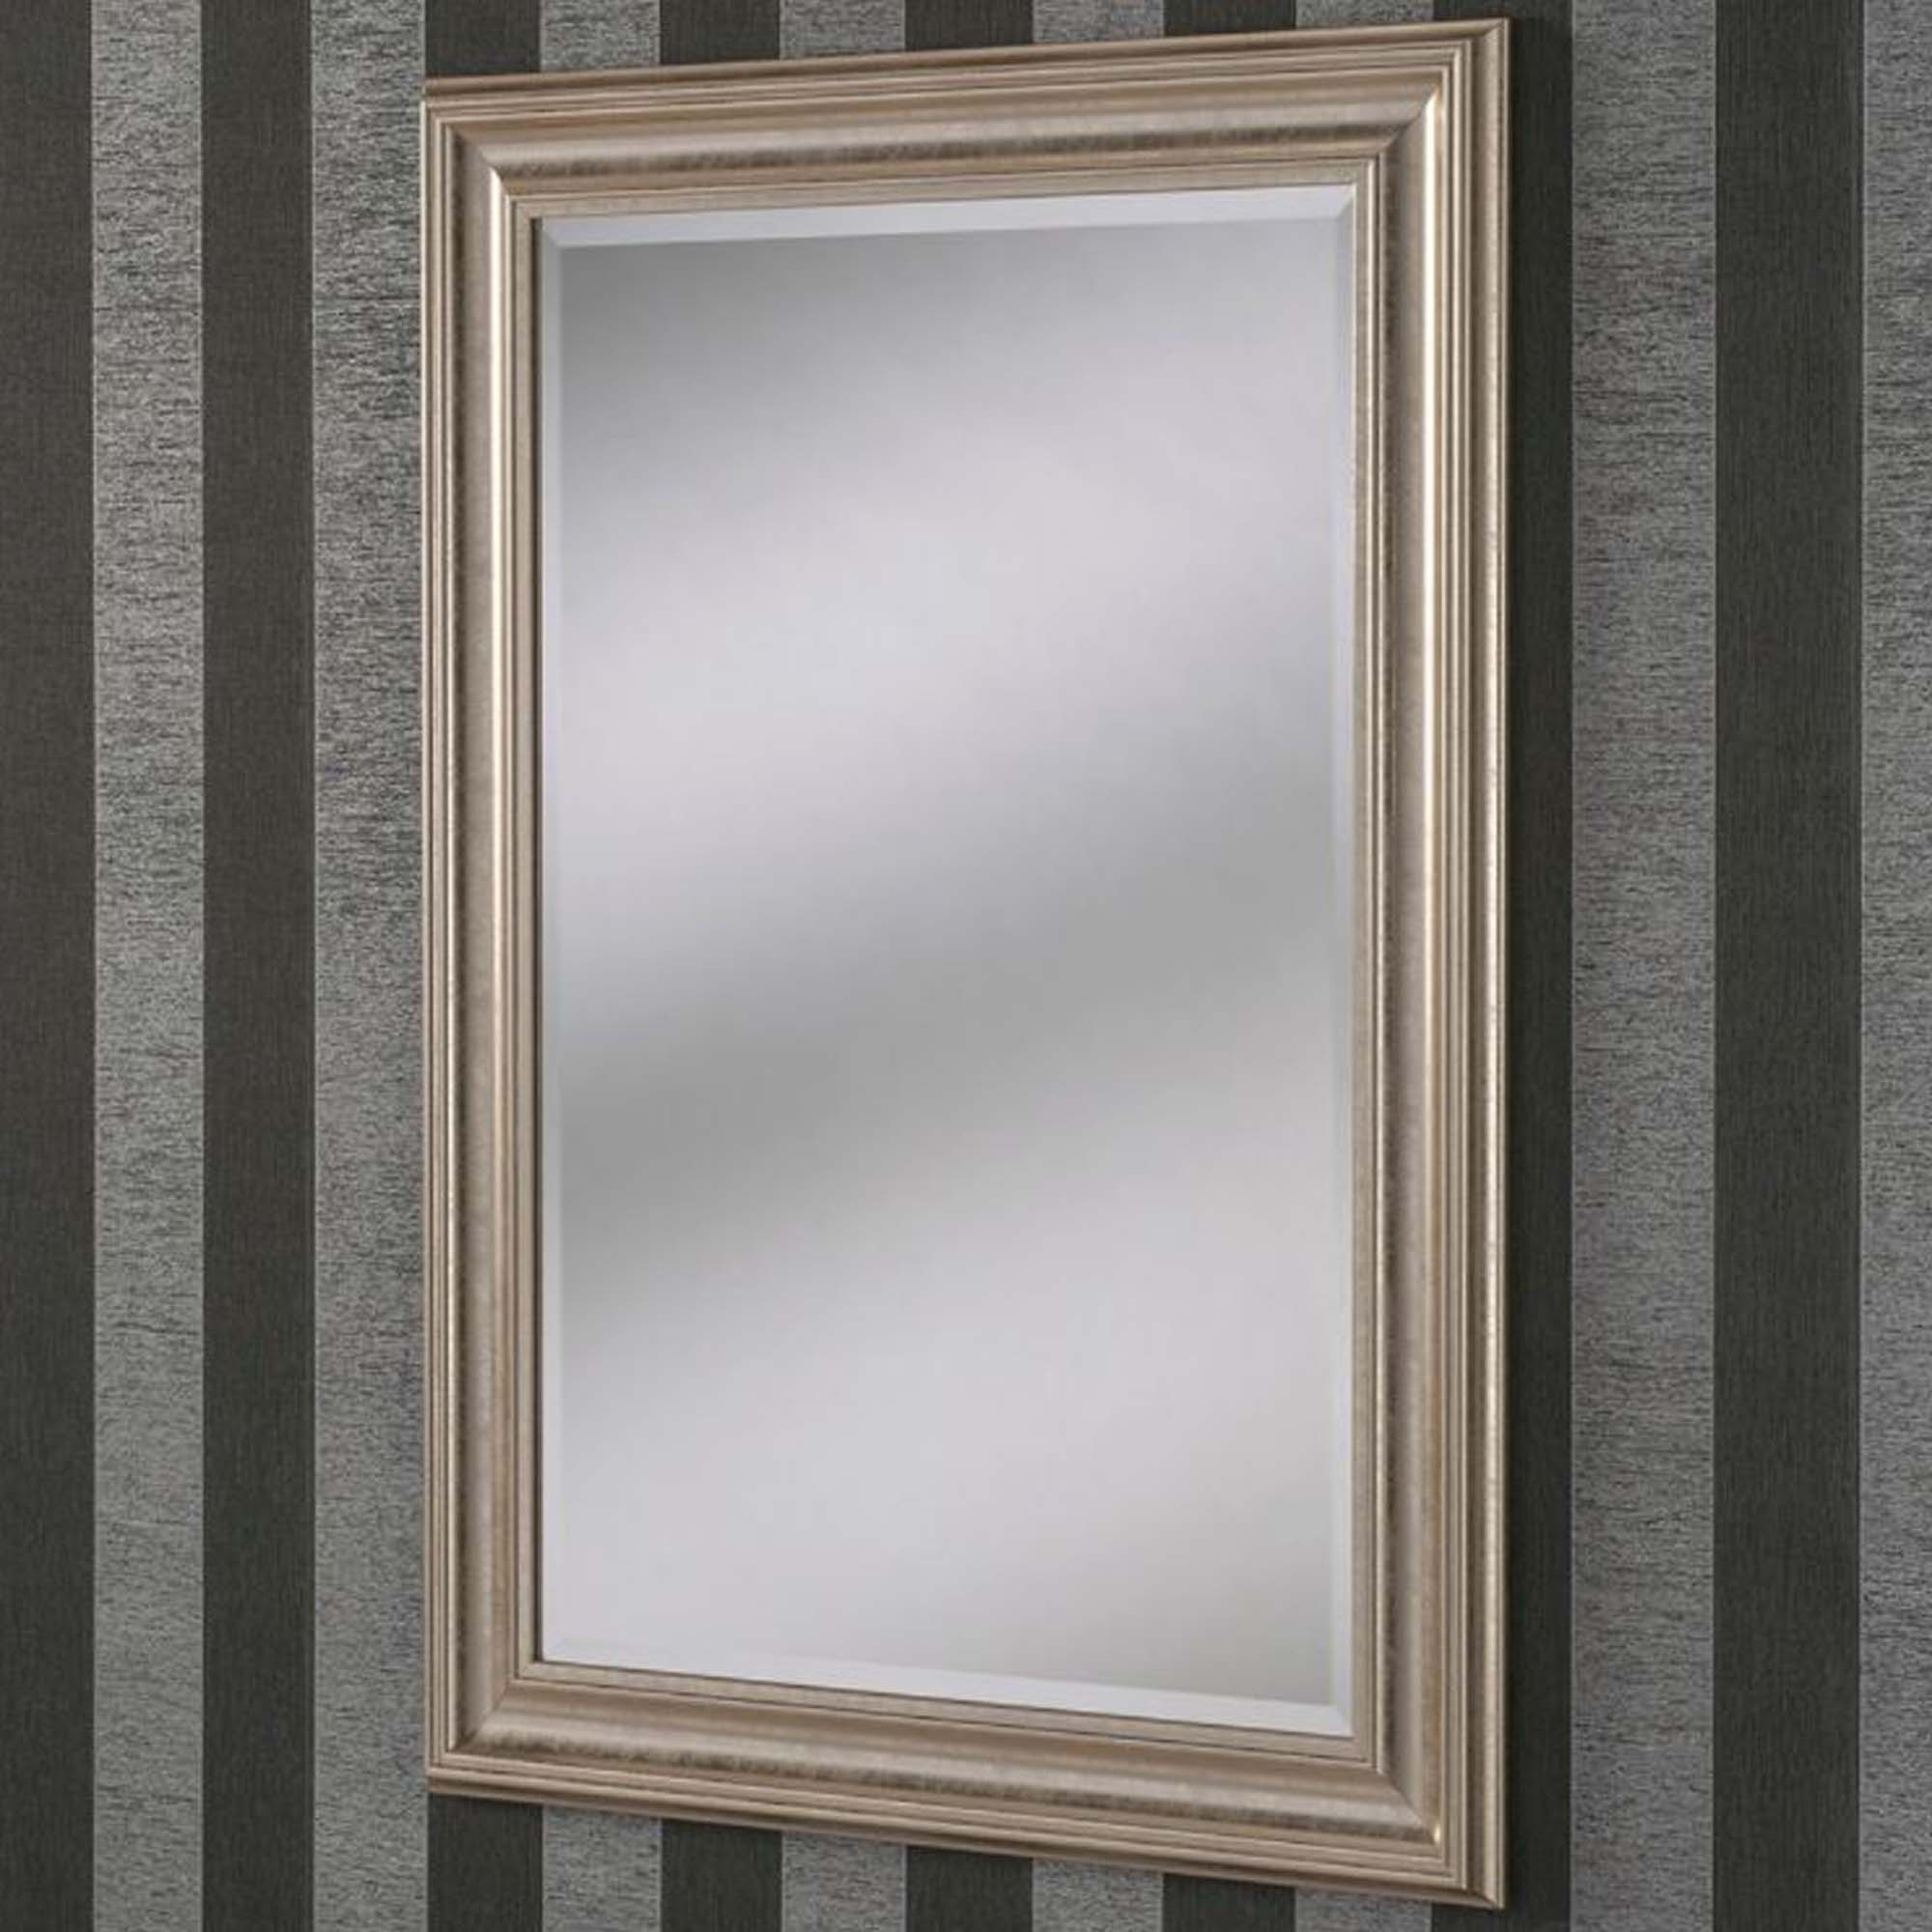 Decorative Champagne Rectangular Wall Mirror Pertaining To Most Recent Champagne Wall Mirrors (View 1 of 20)